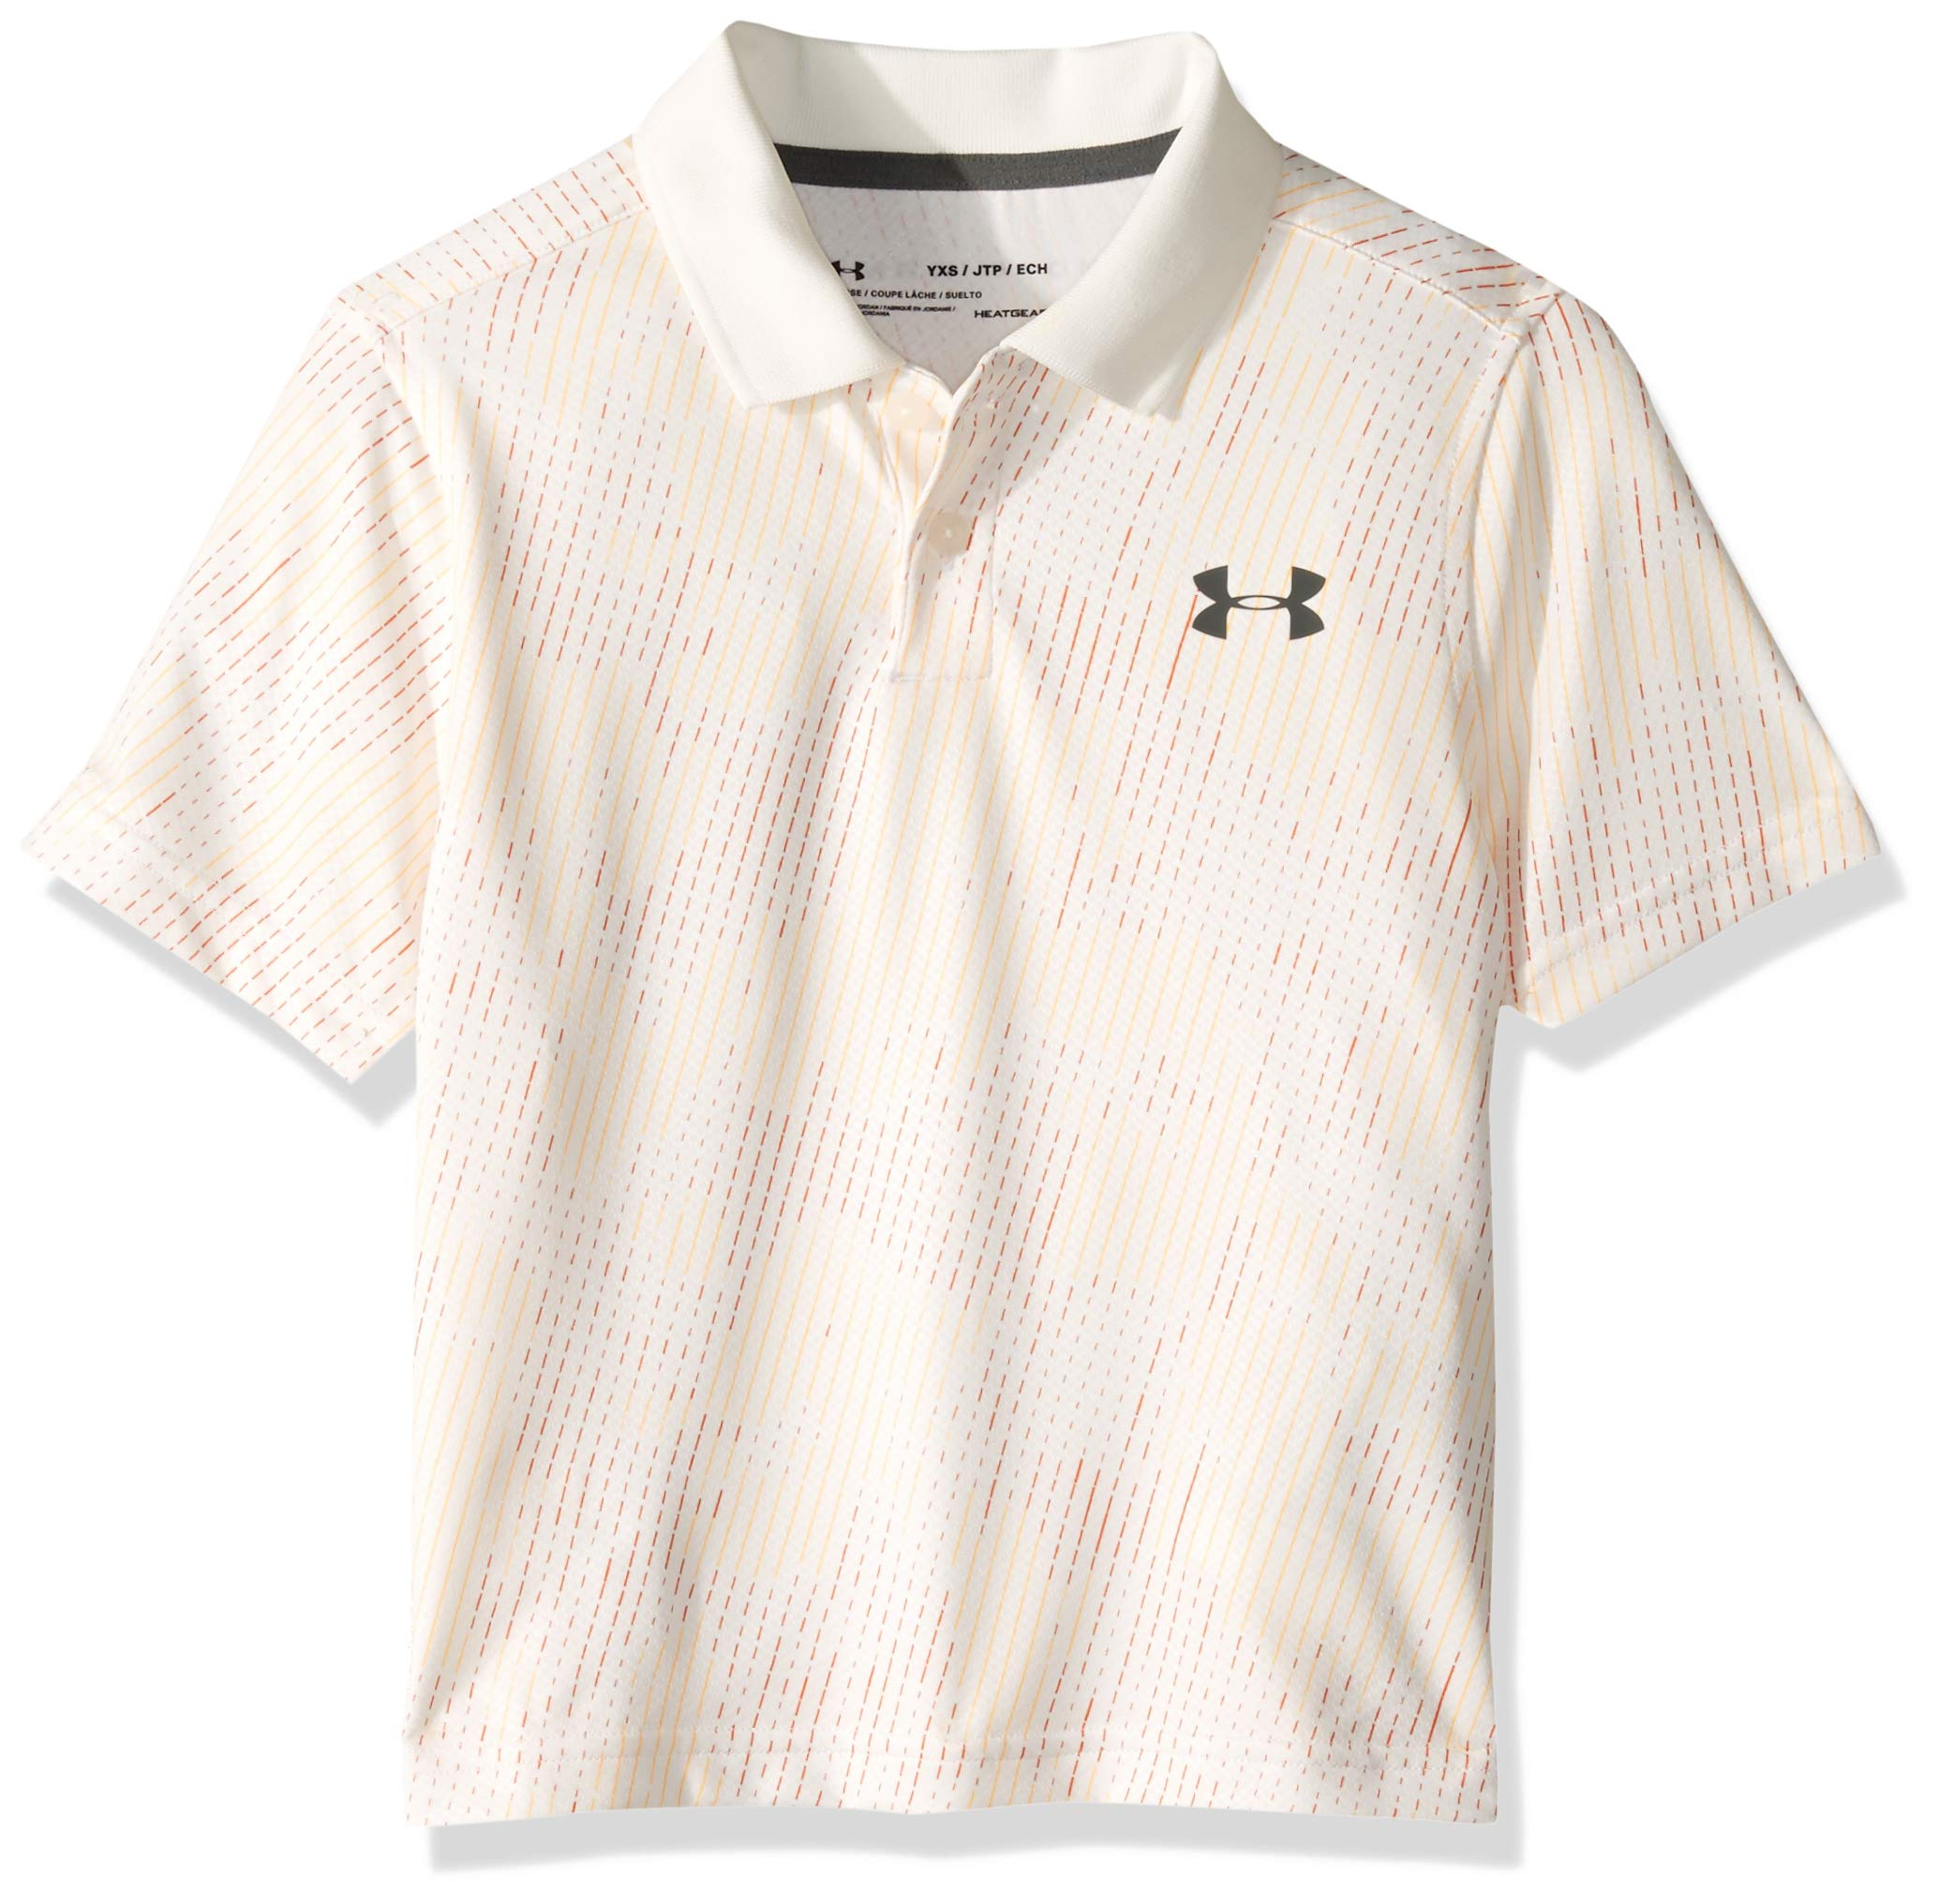 Under Armour Boys' Performance Polo 2.0 Novelty, White//Pitch Gray, Youth Small by Under Armour